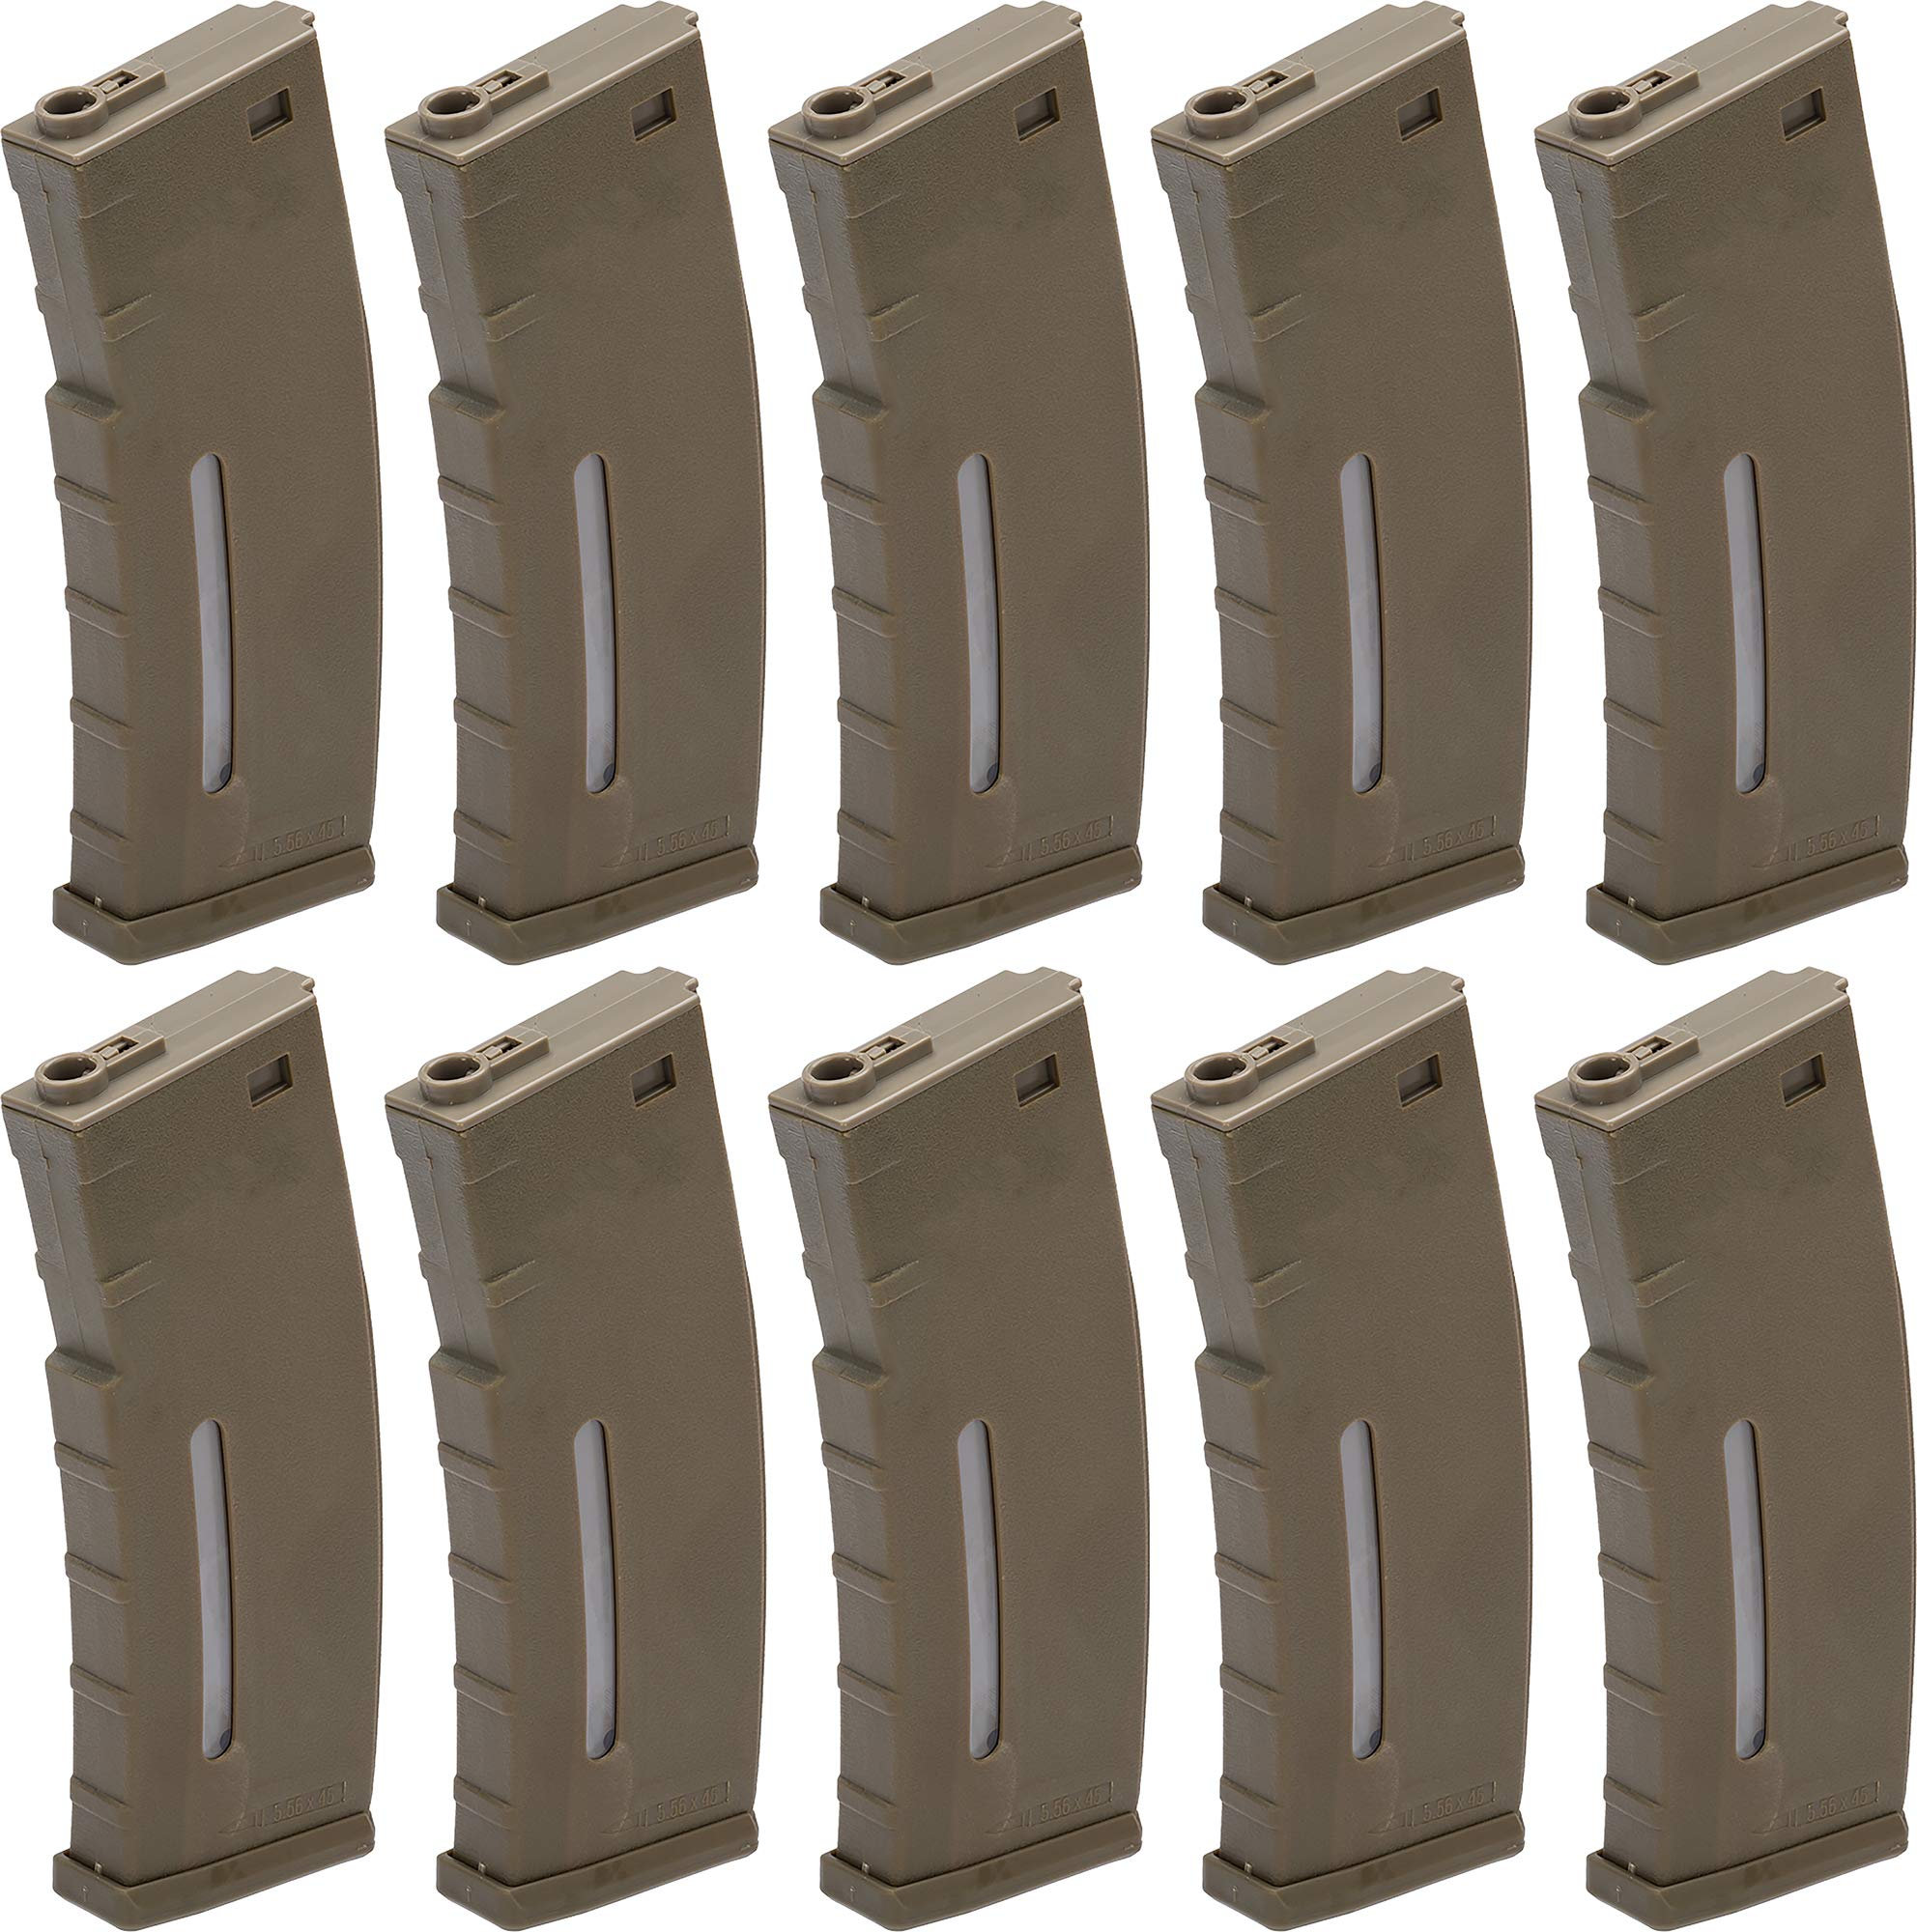 Evike BAMF 190rd Polymer Mid-Cap Airsoft Magazine for M4 / M16 Series AEG Rifles (Color: Tan / x10 Package) by Evike